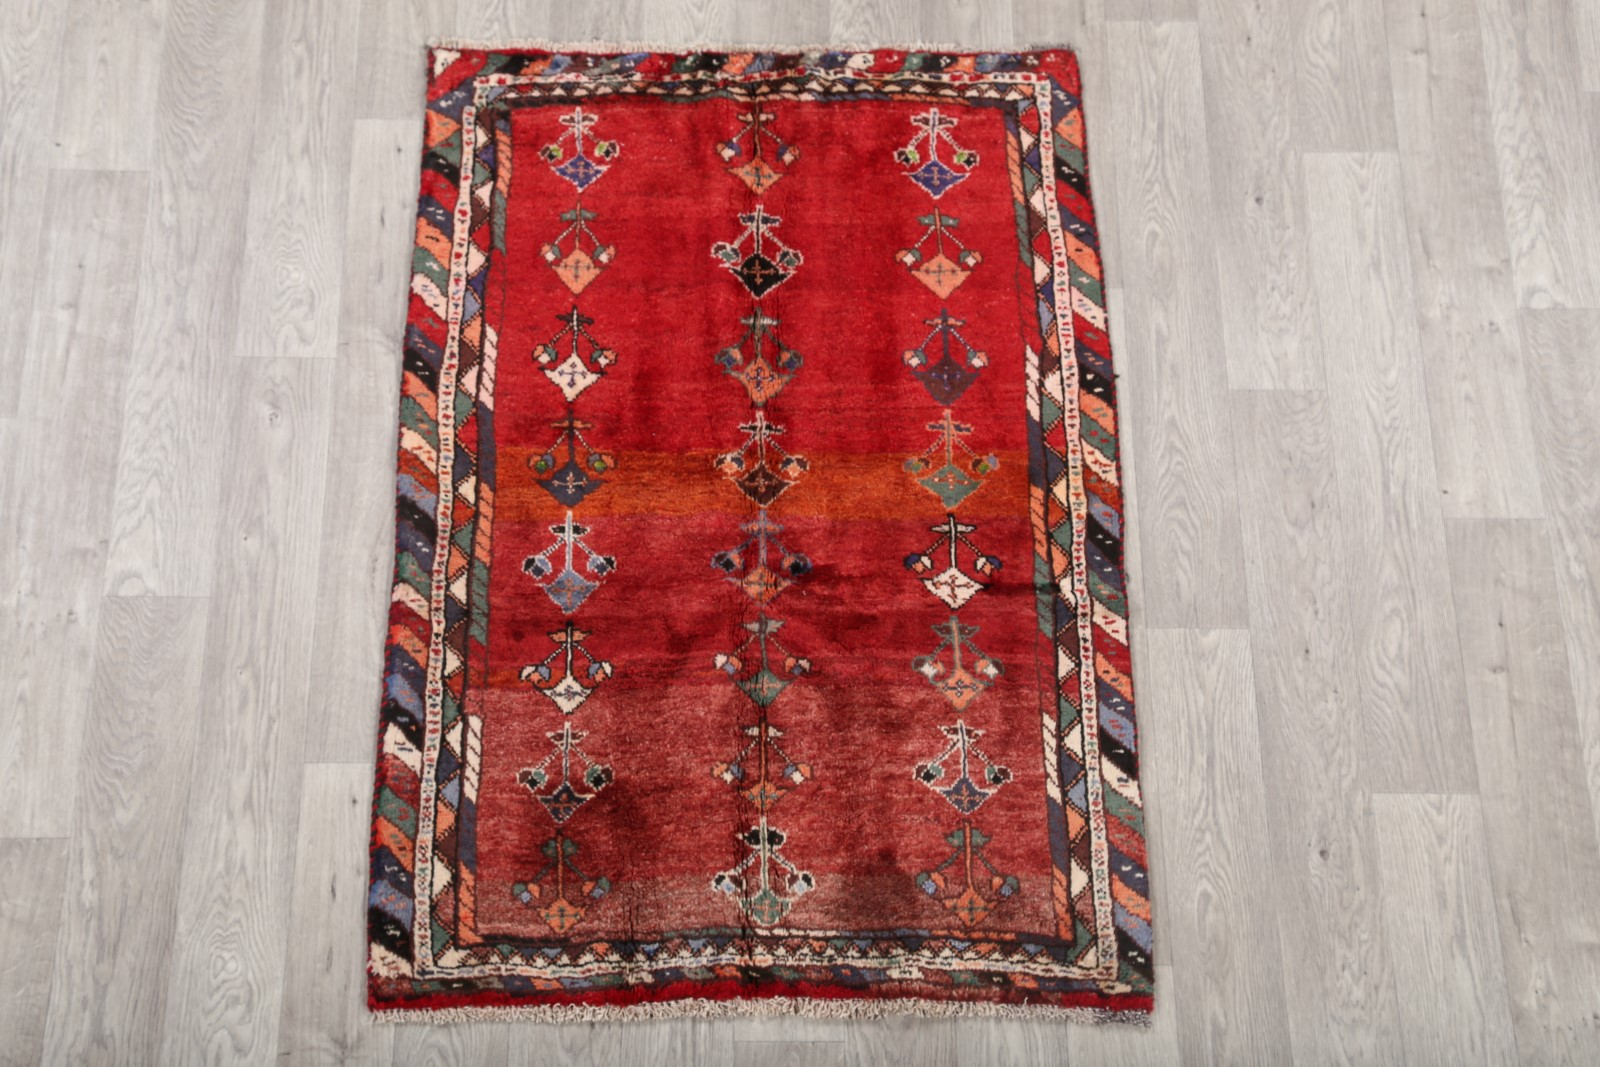 antibacterial rugs quotations rug skid alibaba on line rubber com non deals guides x kitchen slip get cheap back at shopping find